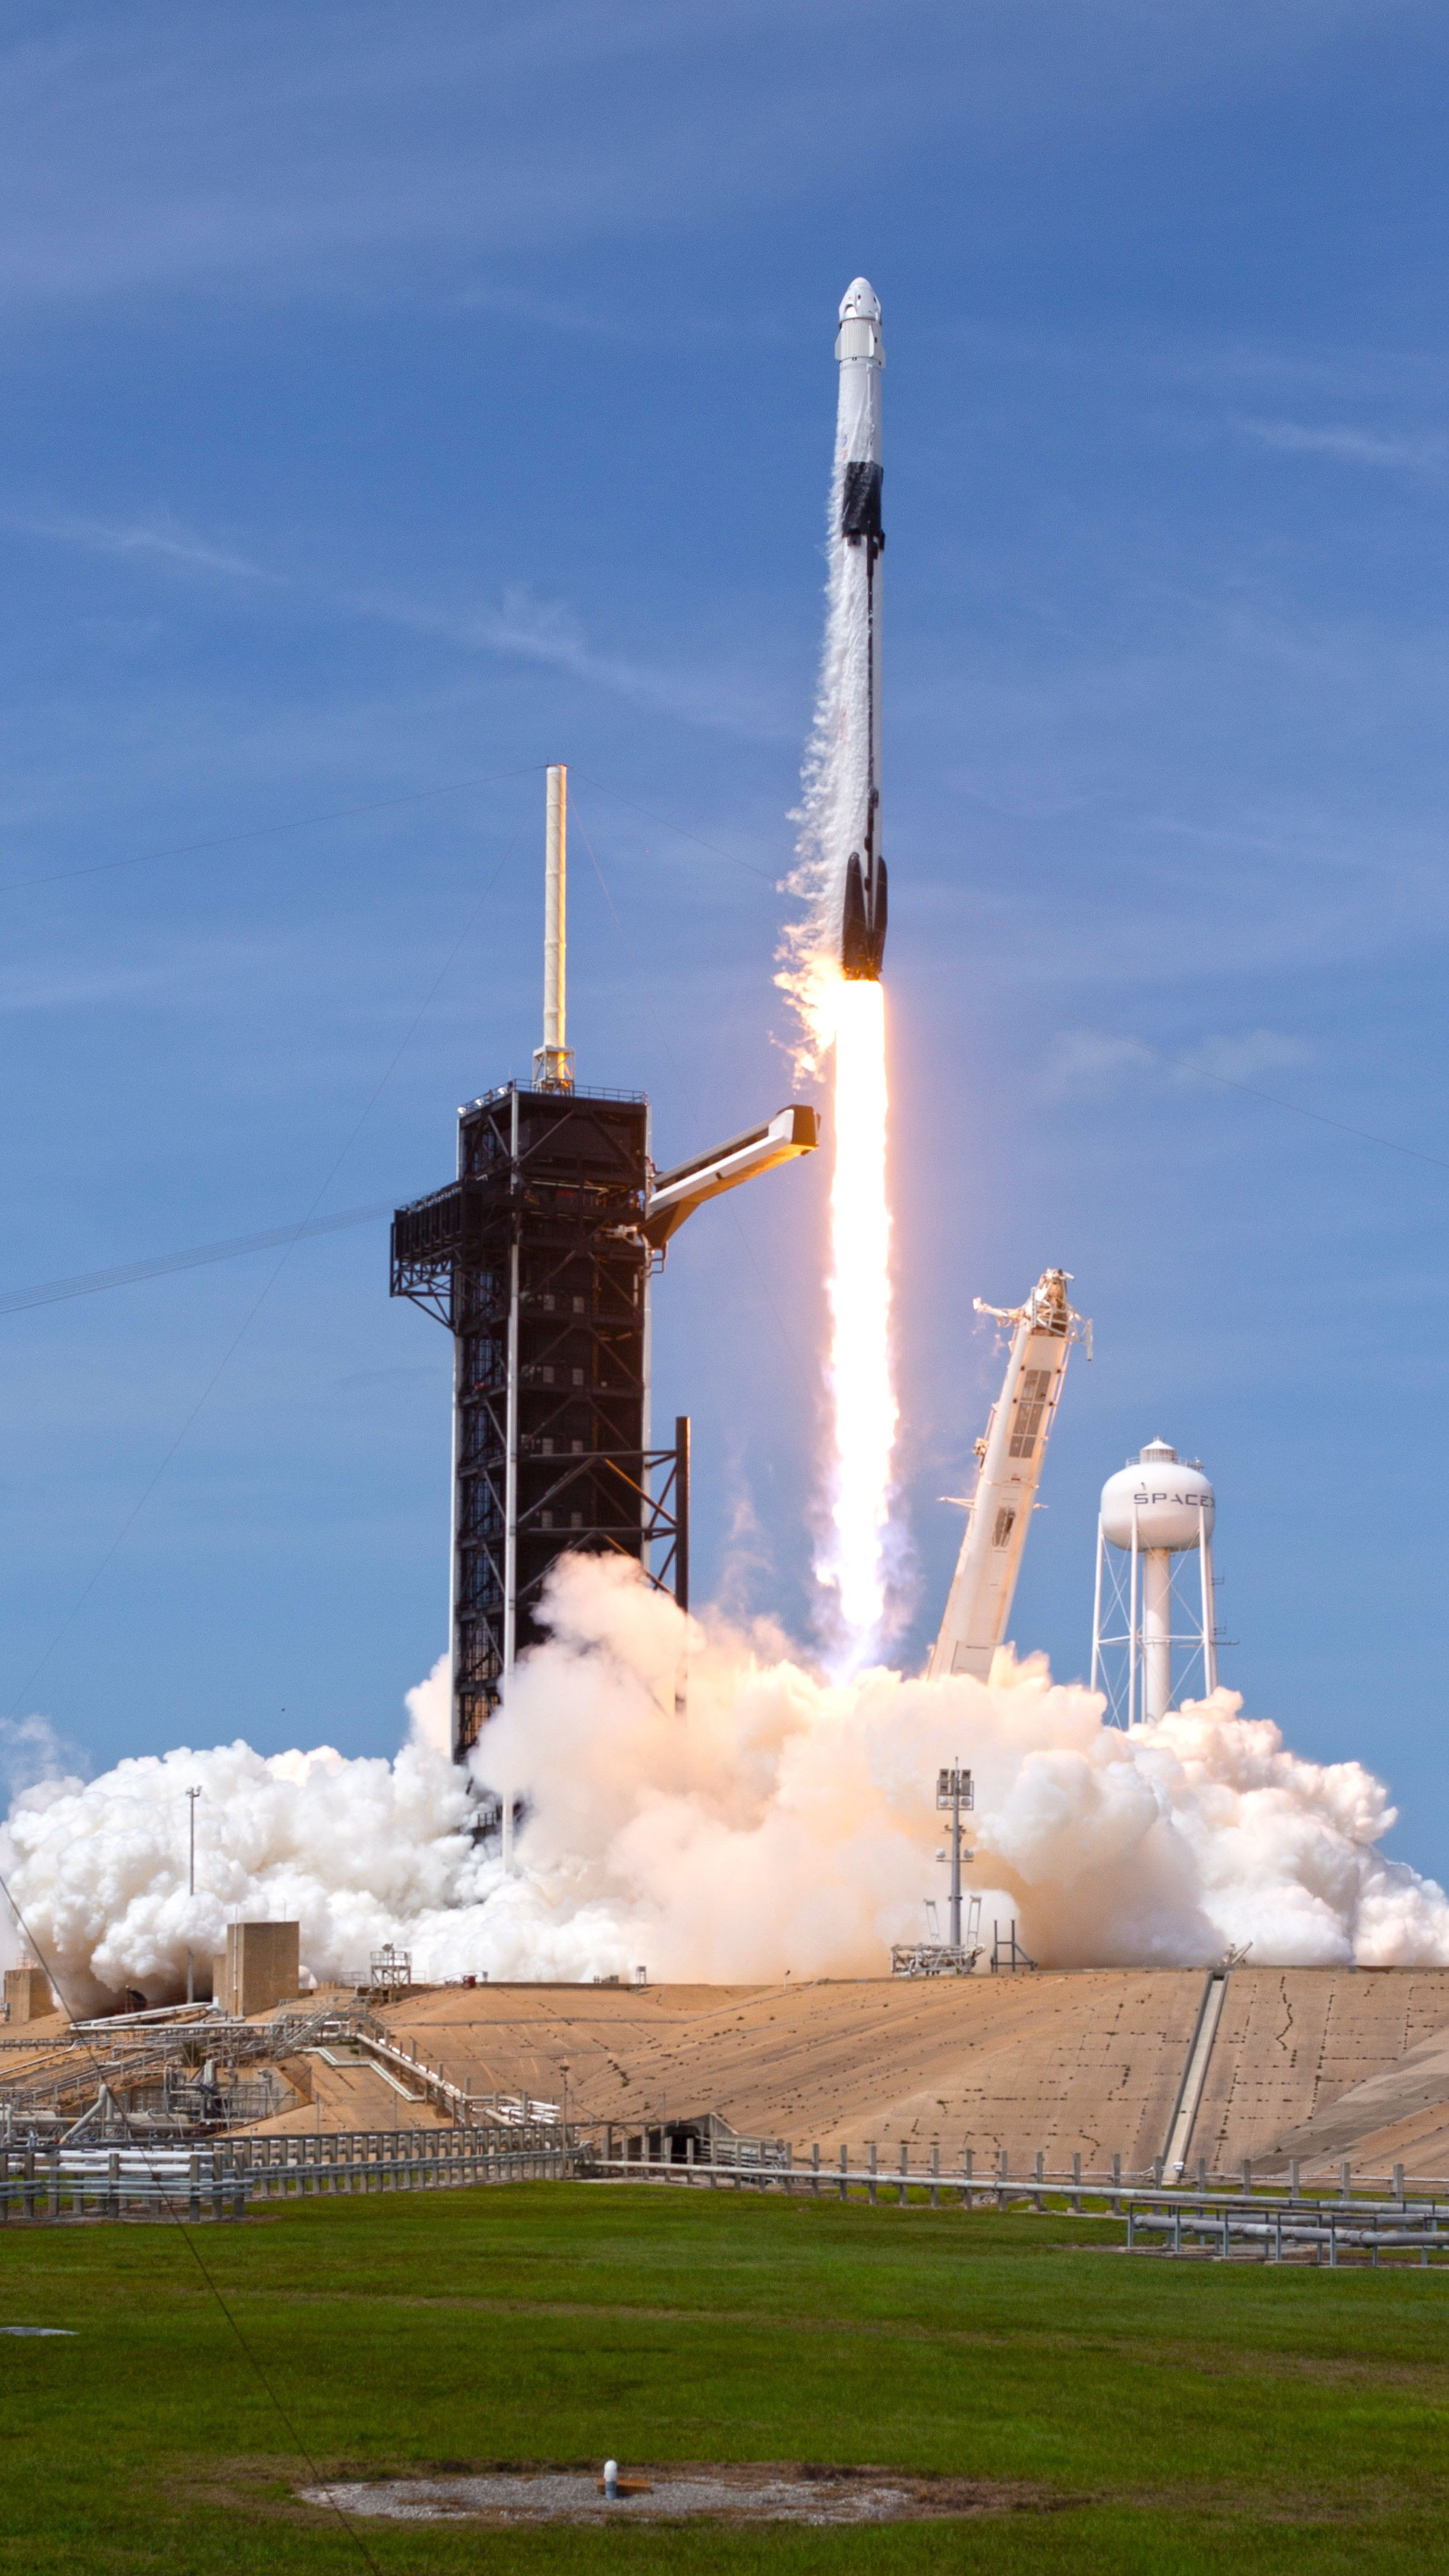 36+ Spacex wallpaper iphone Full HD